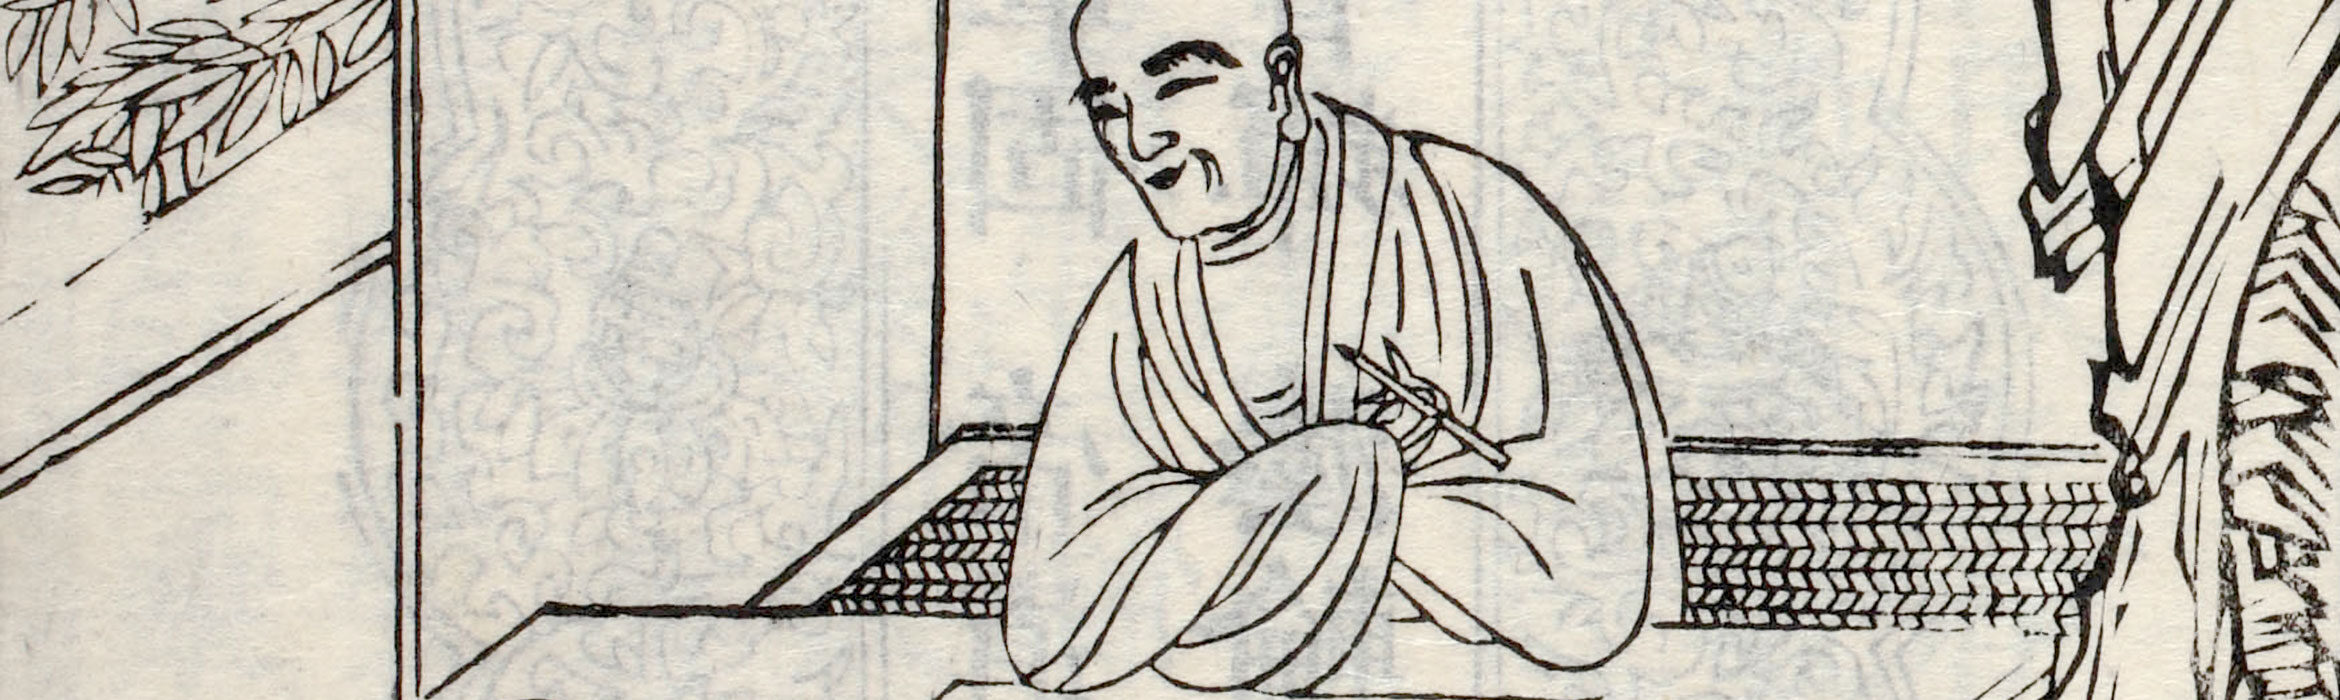 A Forest of Knowledge about the Texts and Images regarding Buddhist Saints, Sages, Translators, and Encyclopedists